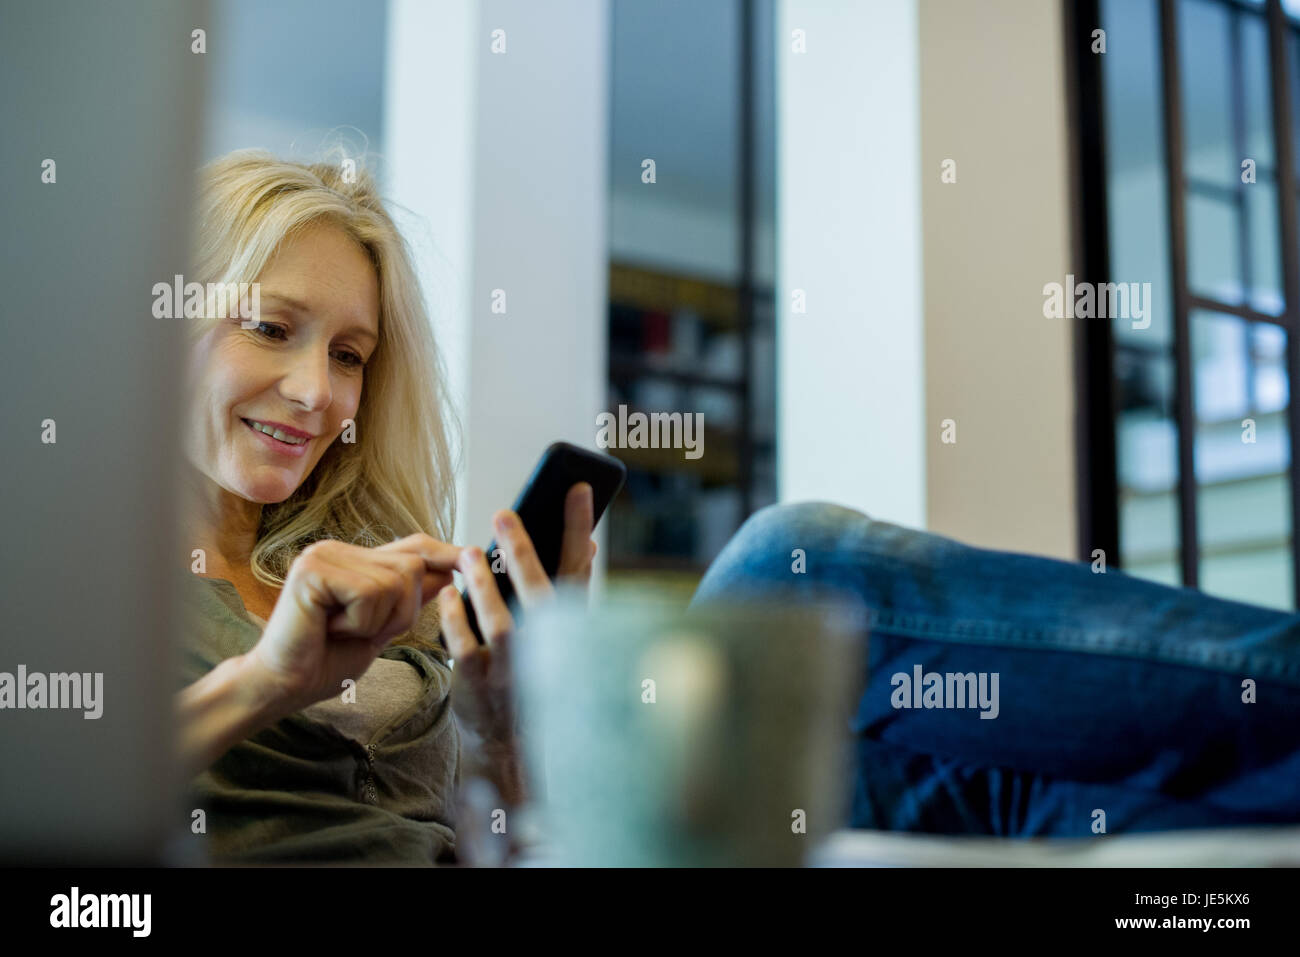 Mature Woman relaxing with smartphone Photo Stock